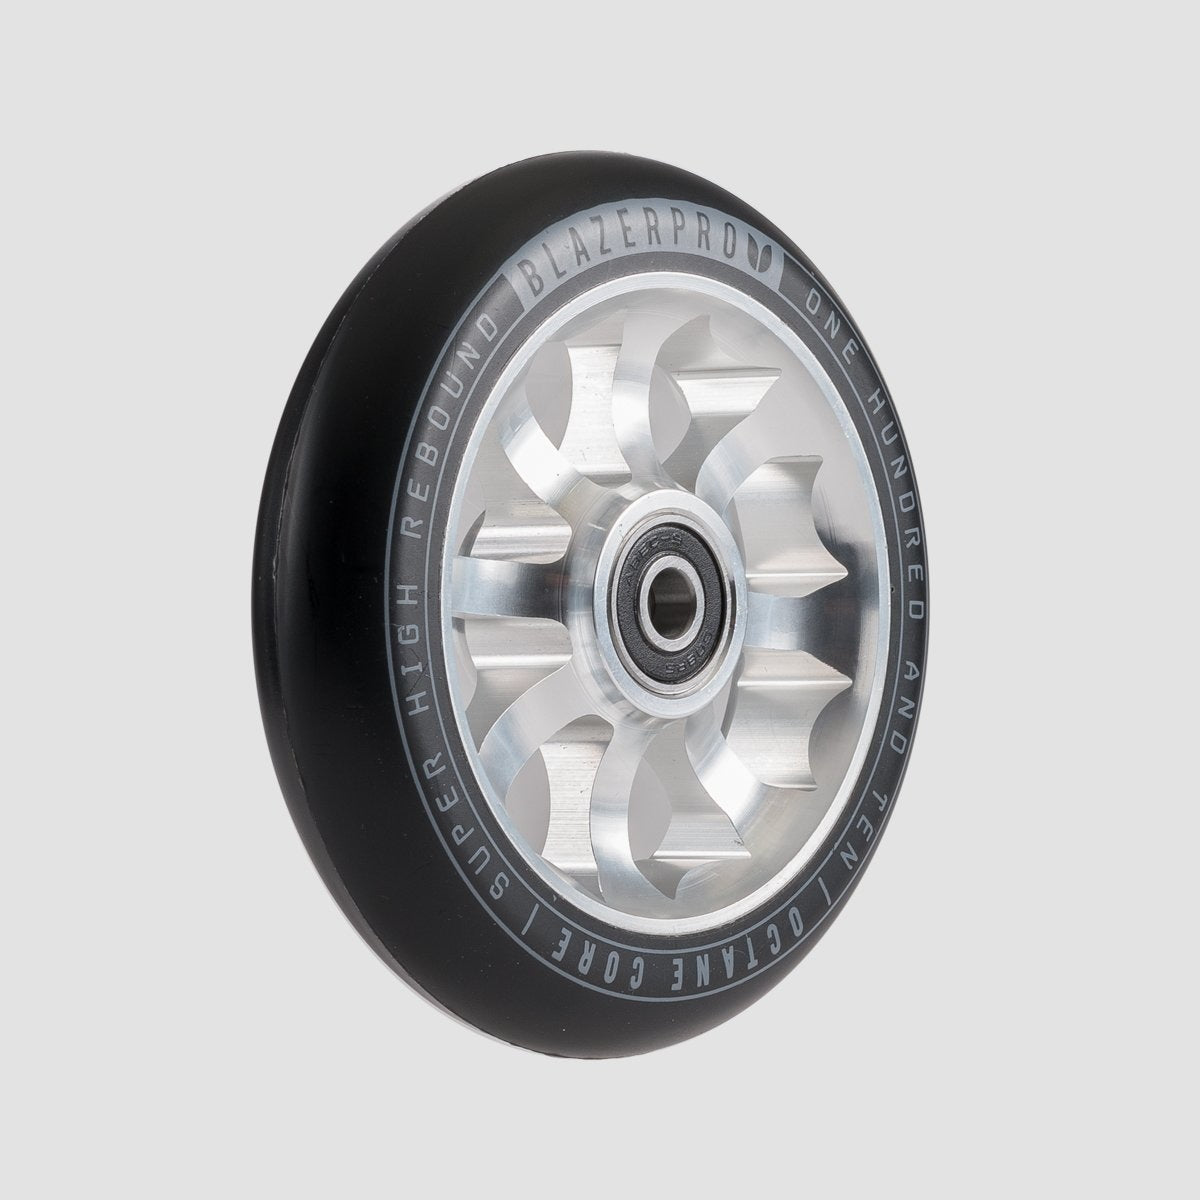 Blazer Pro Octane Scooter Wheel x1 With Abec-9 Silver.110mm - Scooter